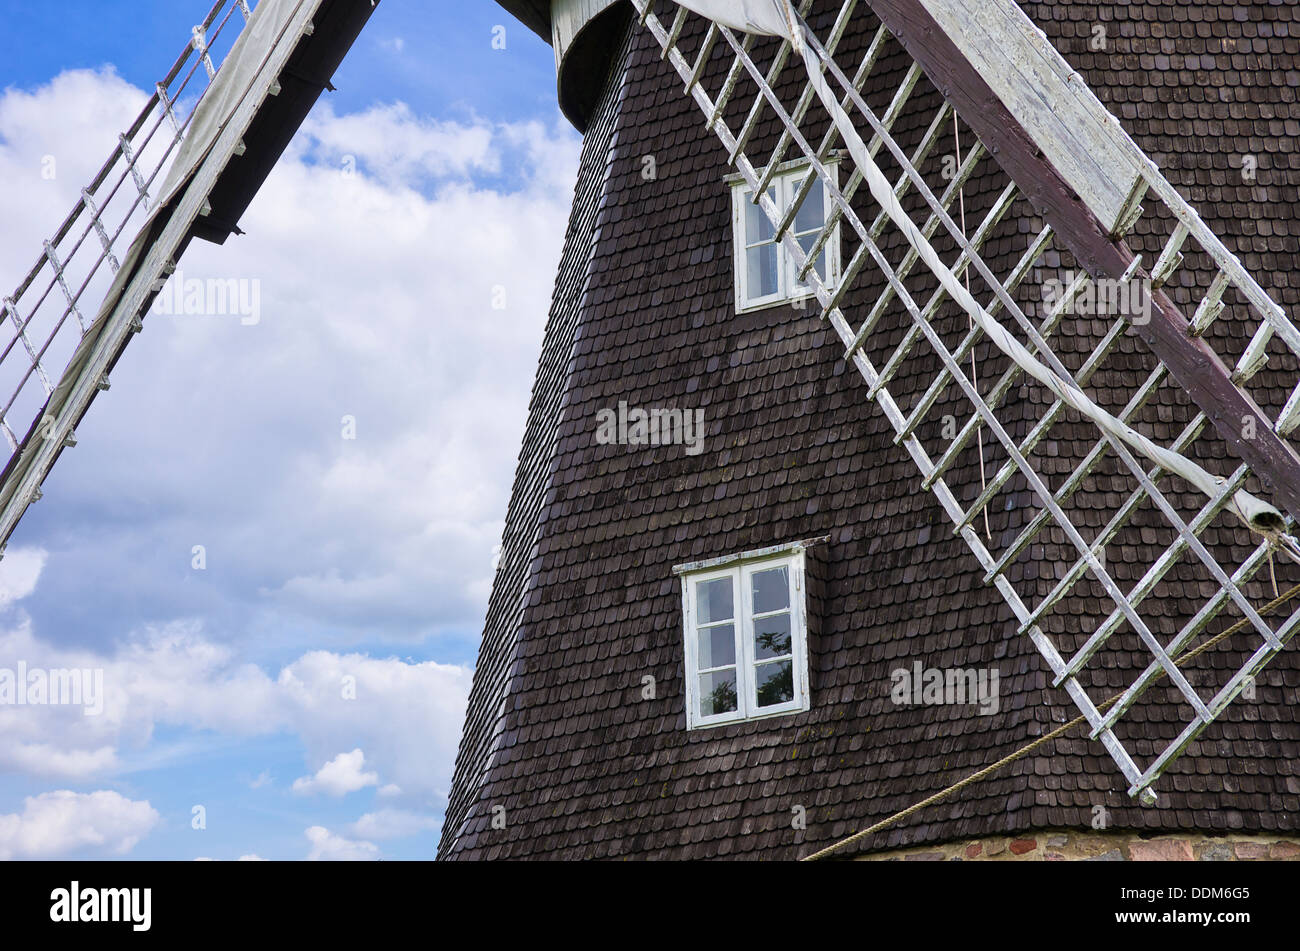 Historic Windmill, Woldegk, Mecklenburg, Germany - Stock Image